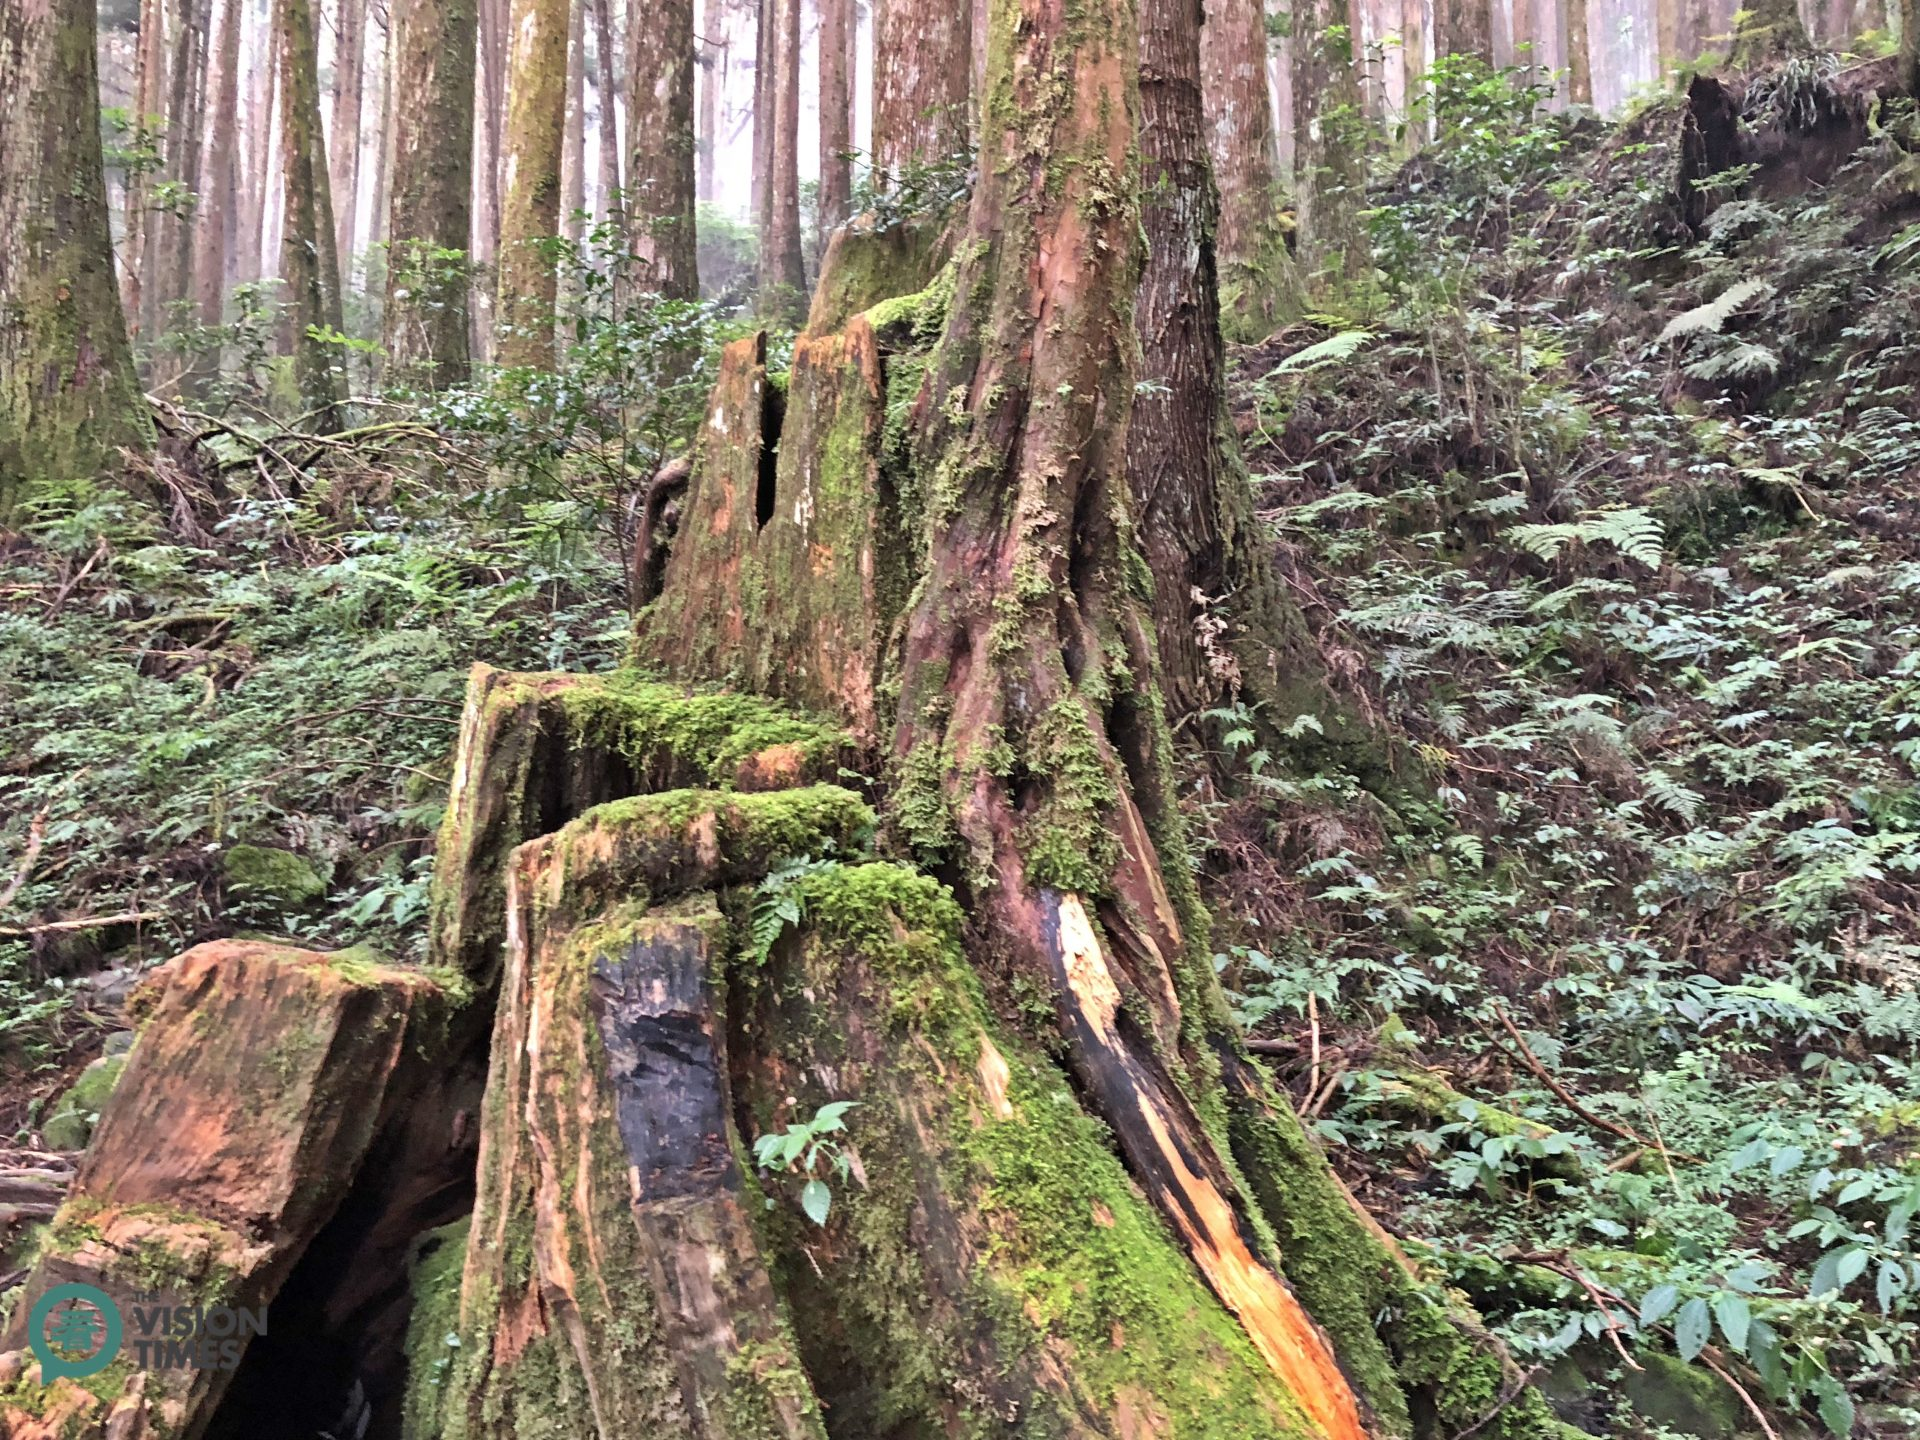 Many stumps of Taiwan red cypress can still be spotted along Tefuye Old Tail. (Image: Julia Fu / Vision times)